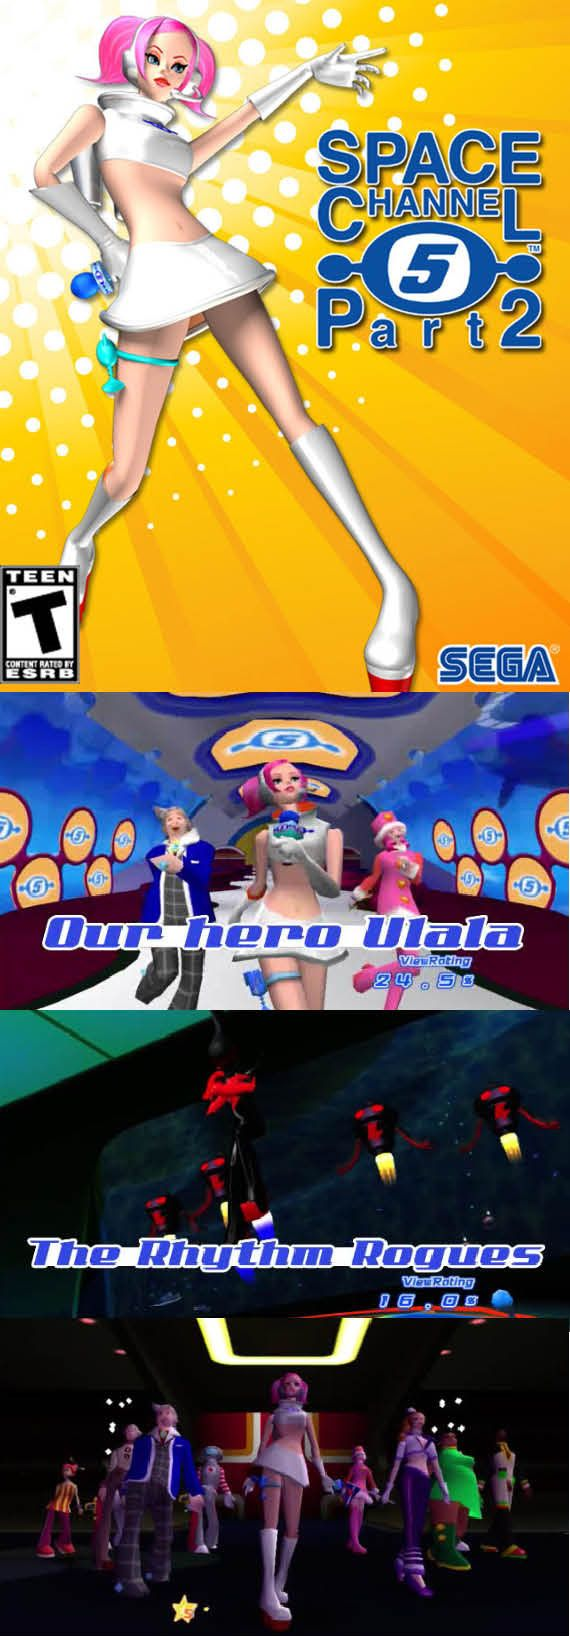 #RetroGamer #SpaceChannel 5 Part 2 lets you relive this rhythm game! #Ulala #Sega #Dreamcast http://www.levelgamingground.com/space-channel-5-part-2-review.html